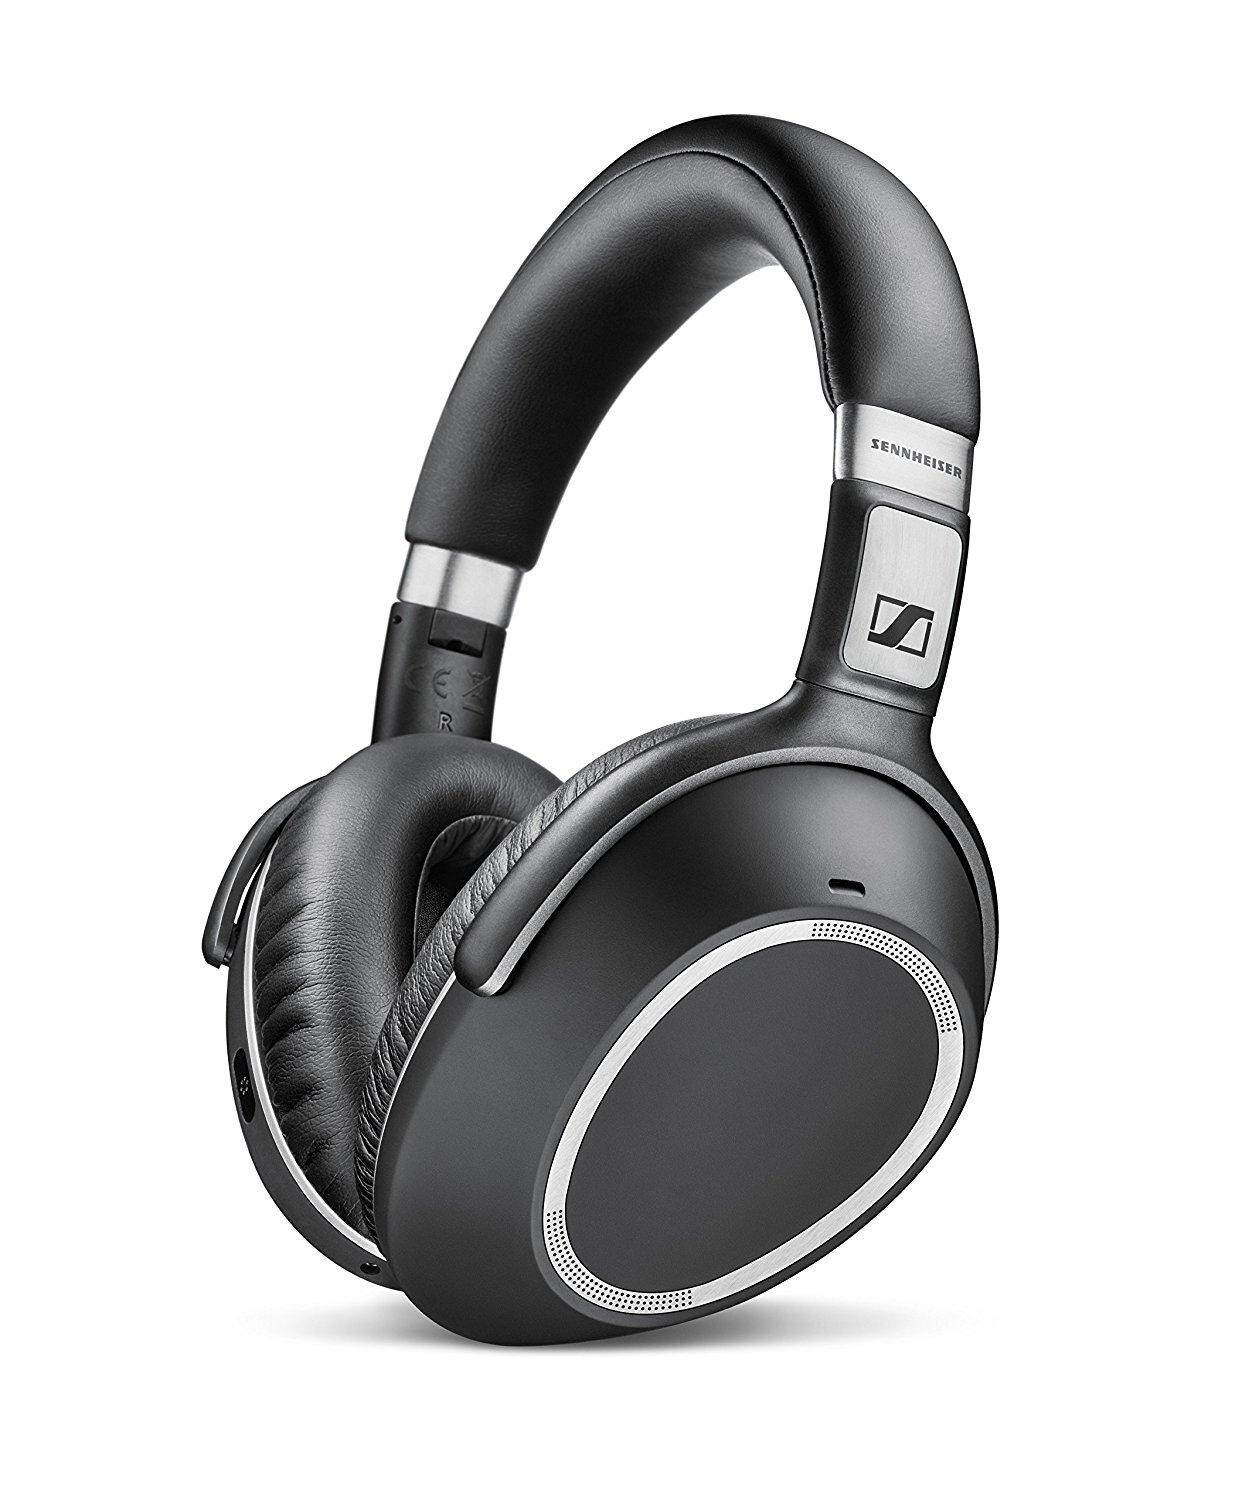 Sennheiser Headphones Headsets Over The Ear Price In High End Earphone Ie 800 Pxc 550 Wireless Adaptive Noise Cancellation